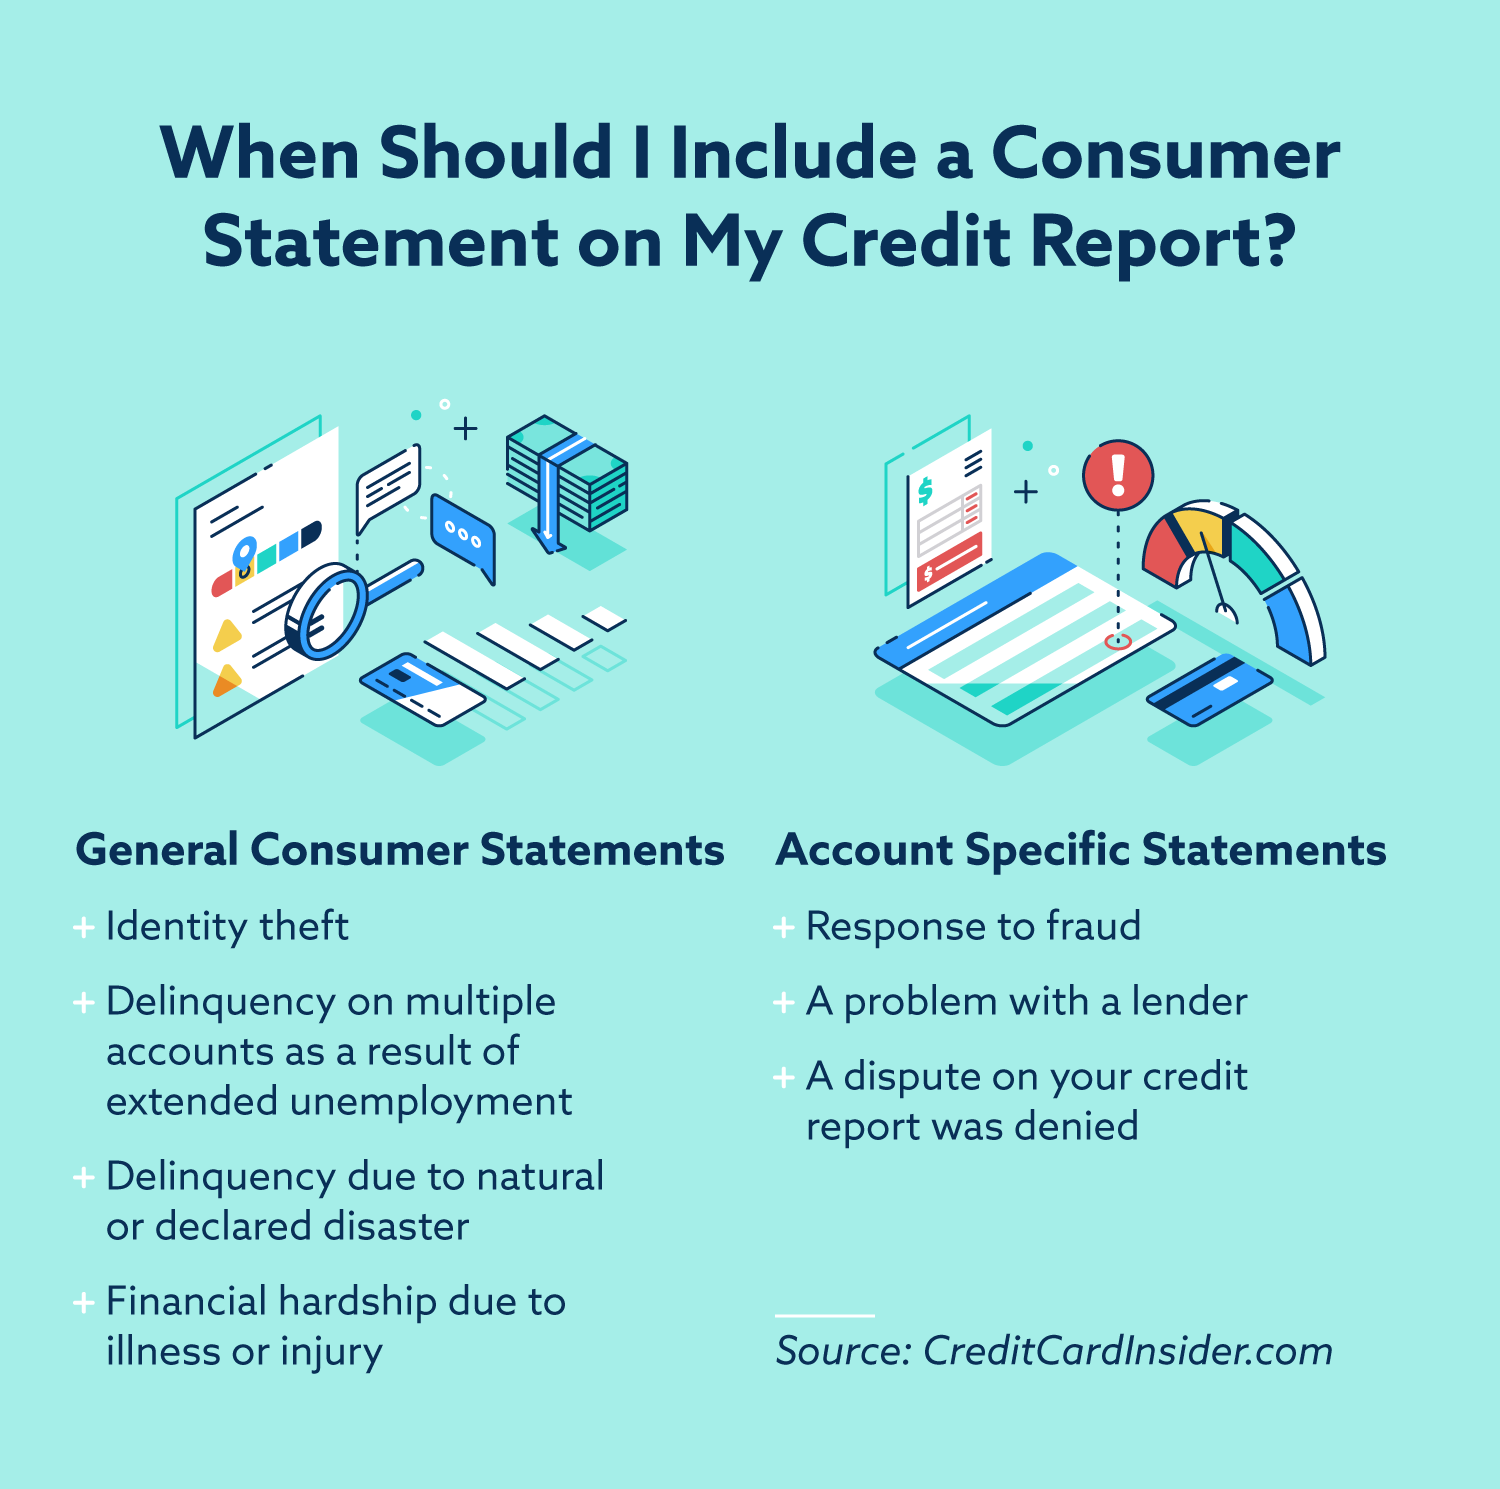 When should I include a consumer statement on my credit report? General consumer statements include identity theft, delinquency on multiple accounts as a result of extended unemployment, delinquency due to natural or declared disaster or financial hardship due to illness or injury. Account specific statements could include response to fraud, a problem with a lender or a dispute on your credit report that was denied.